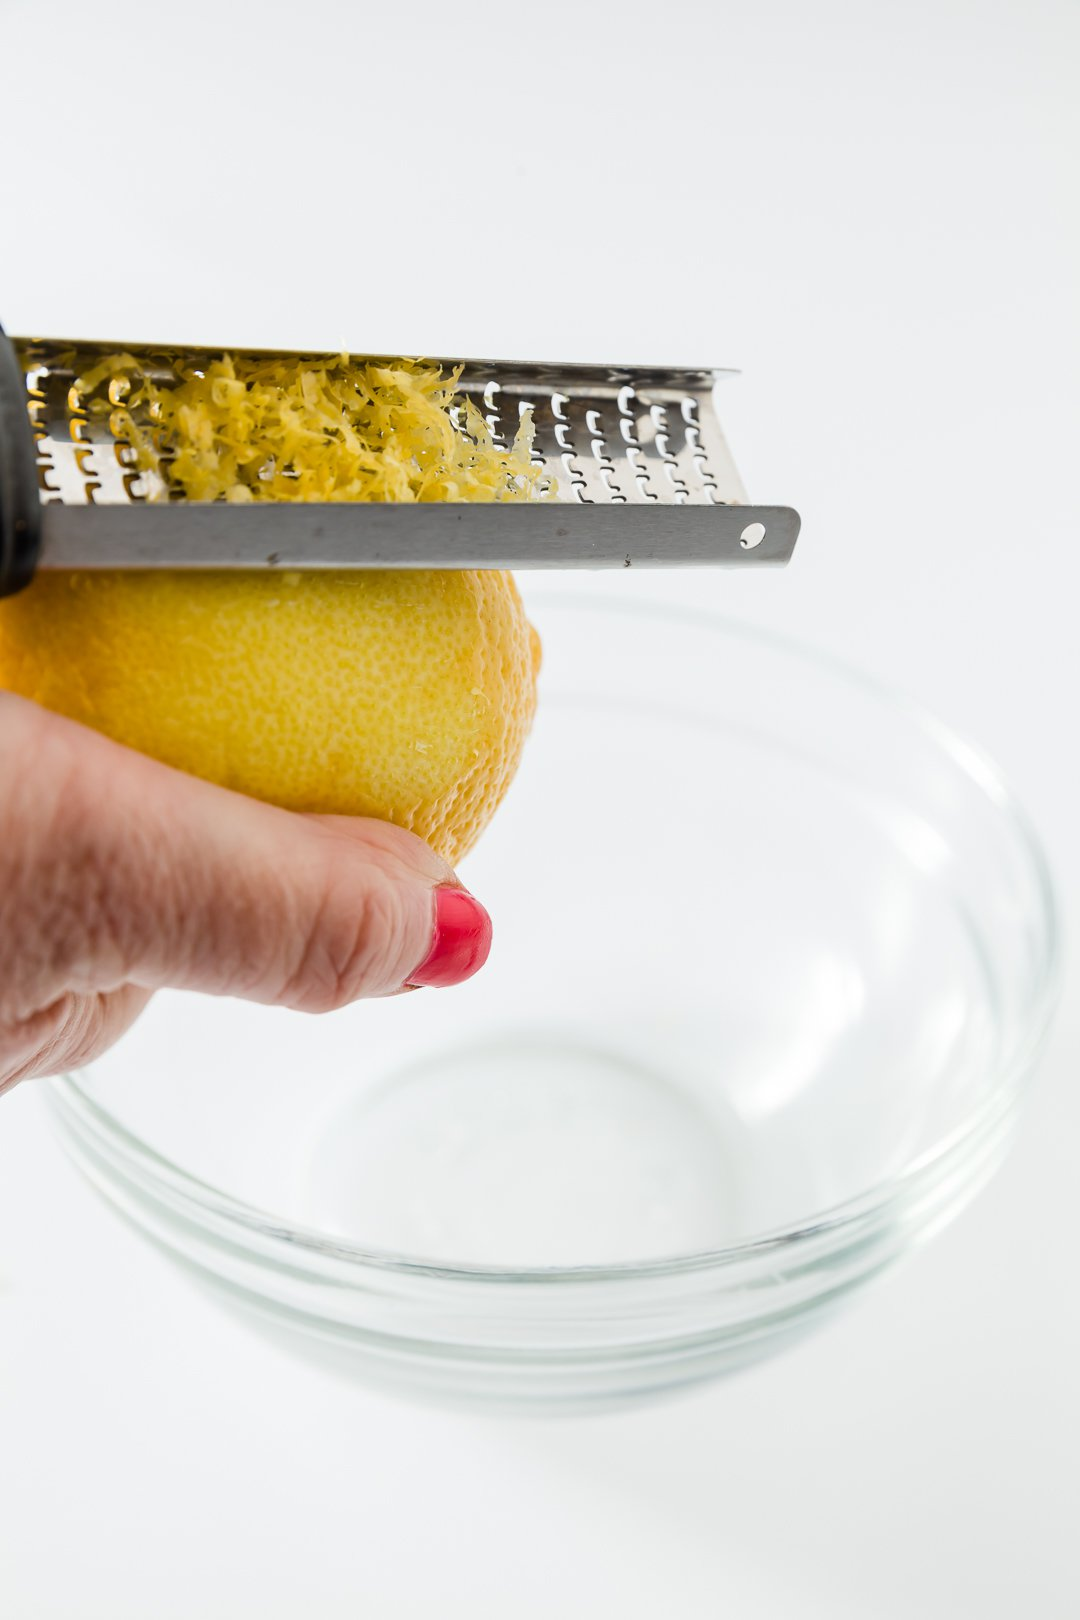 zesting a lemon with a microplane zester into a glass bowl